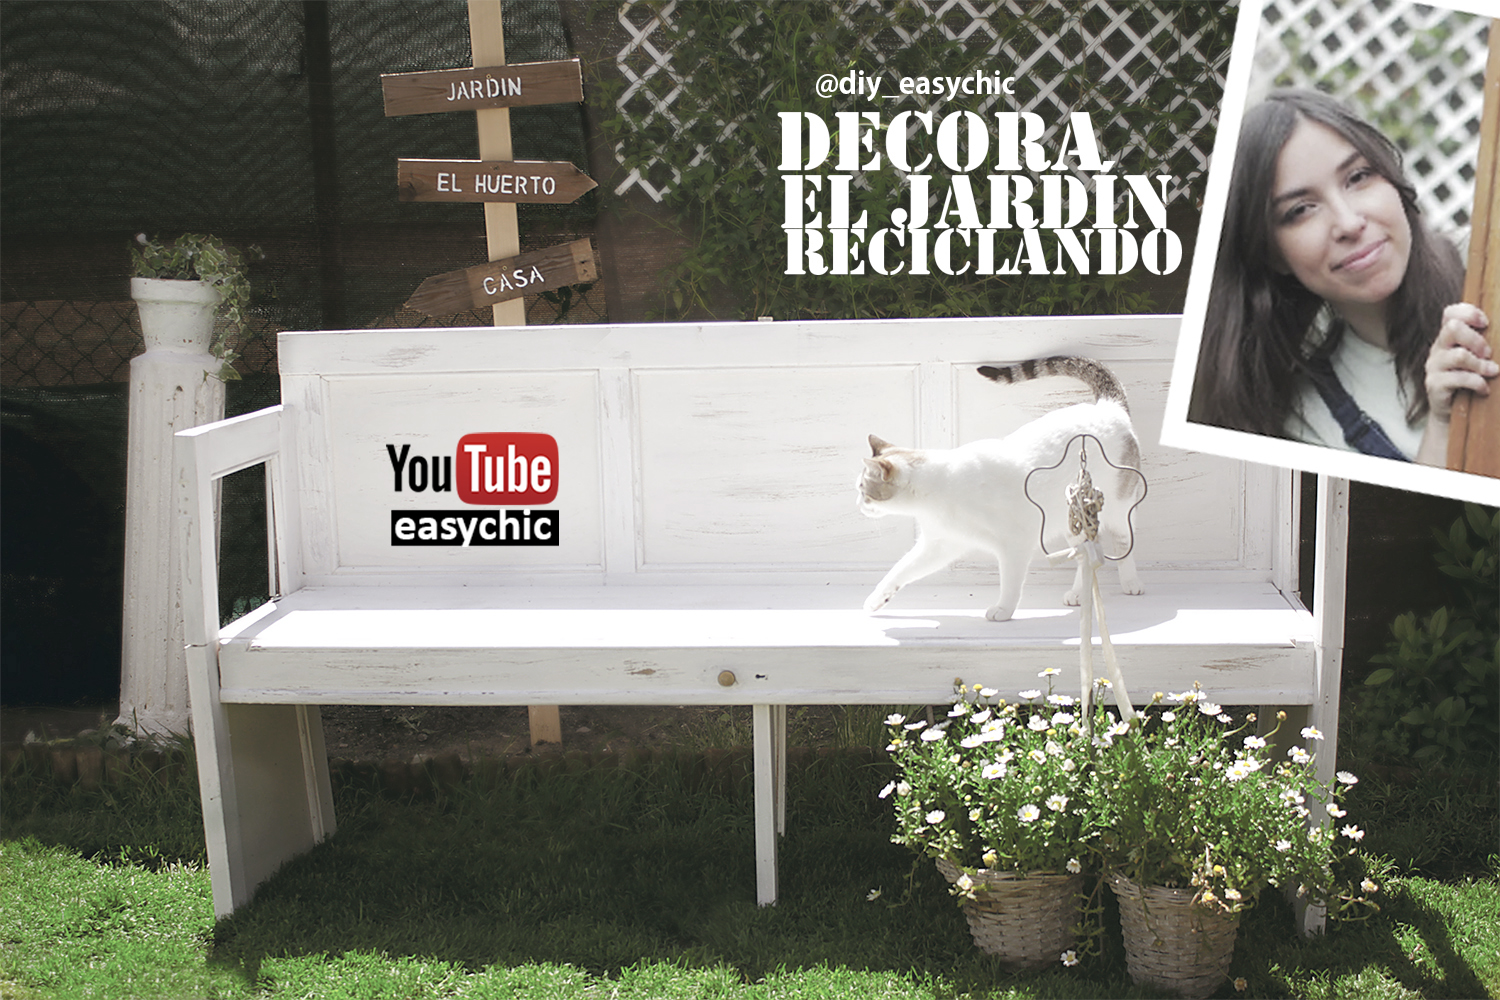 Easychic ideas para decorar el jard n reciclando diy for Ideas para decorar reciclando